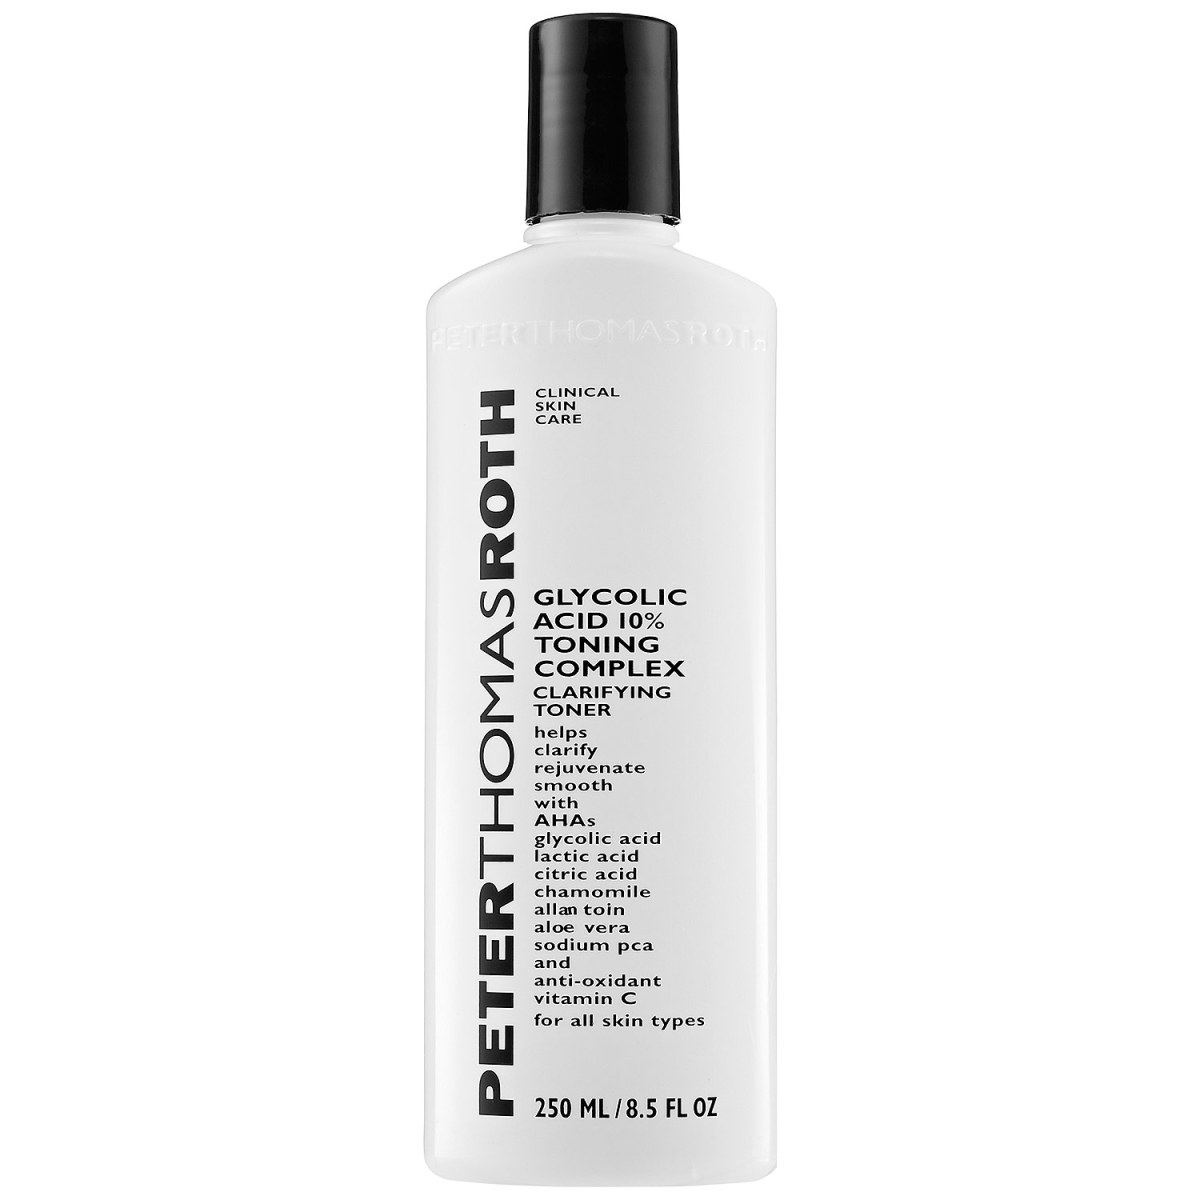 Peter Thomas Roth Glycolic Acid 10 Percent Toning Complex